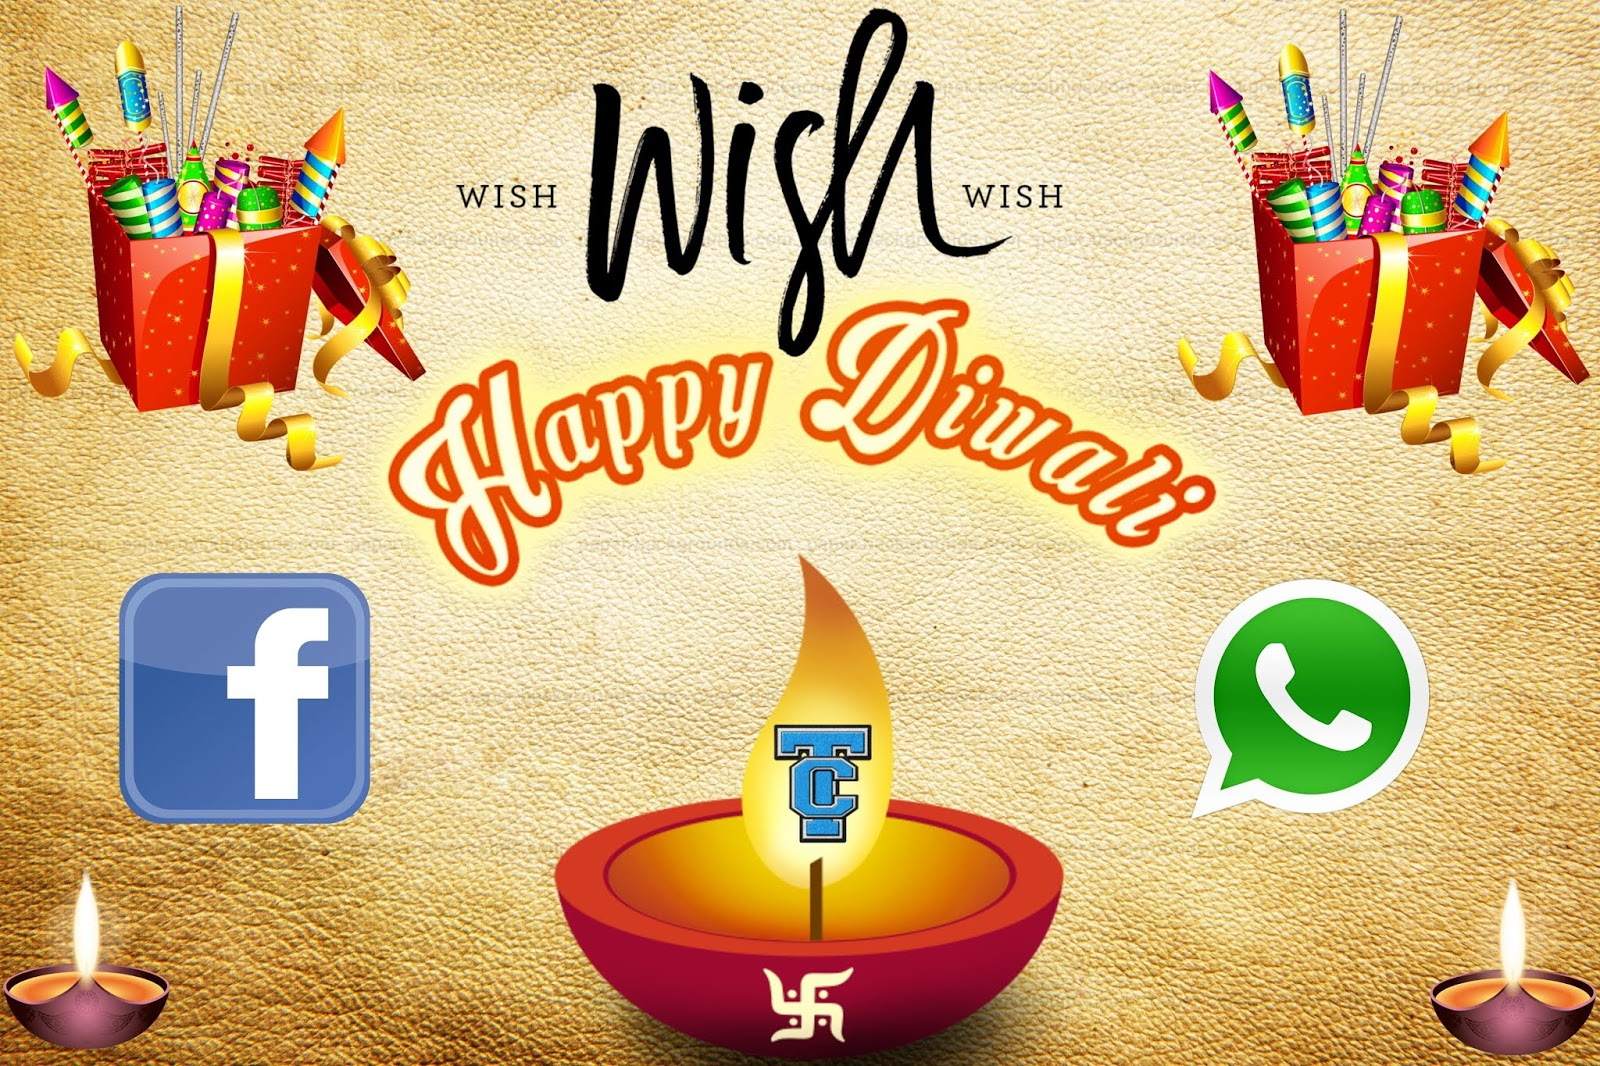 Diwali 2018 These Diwali Greetings With Your Friends And Family Is